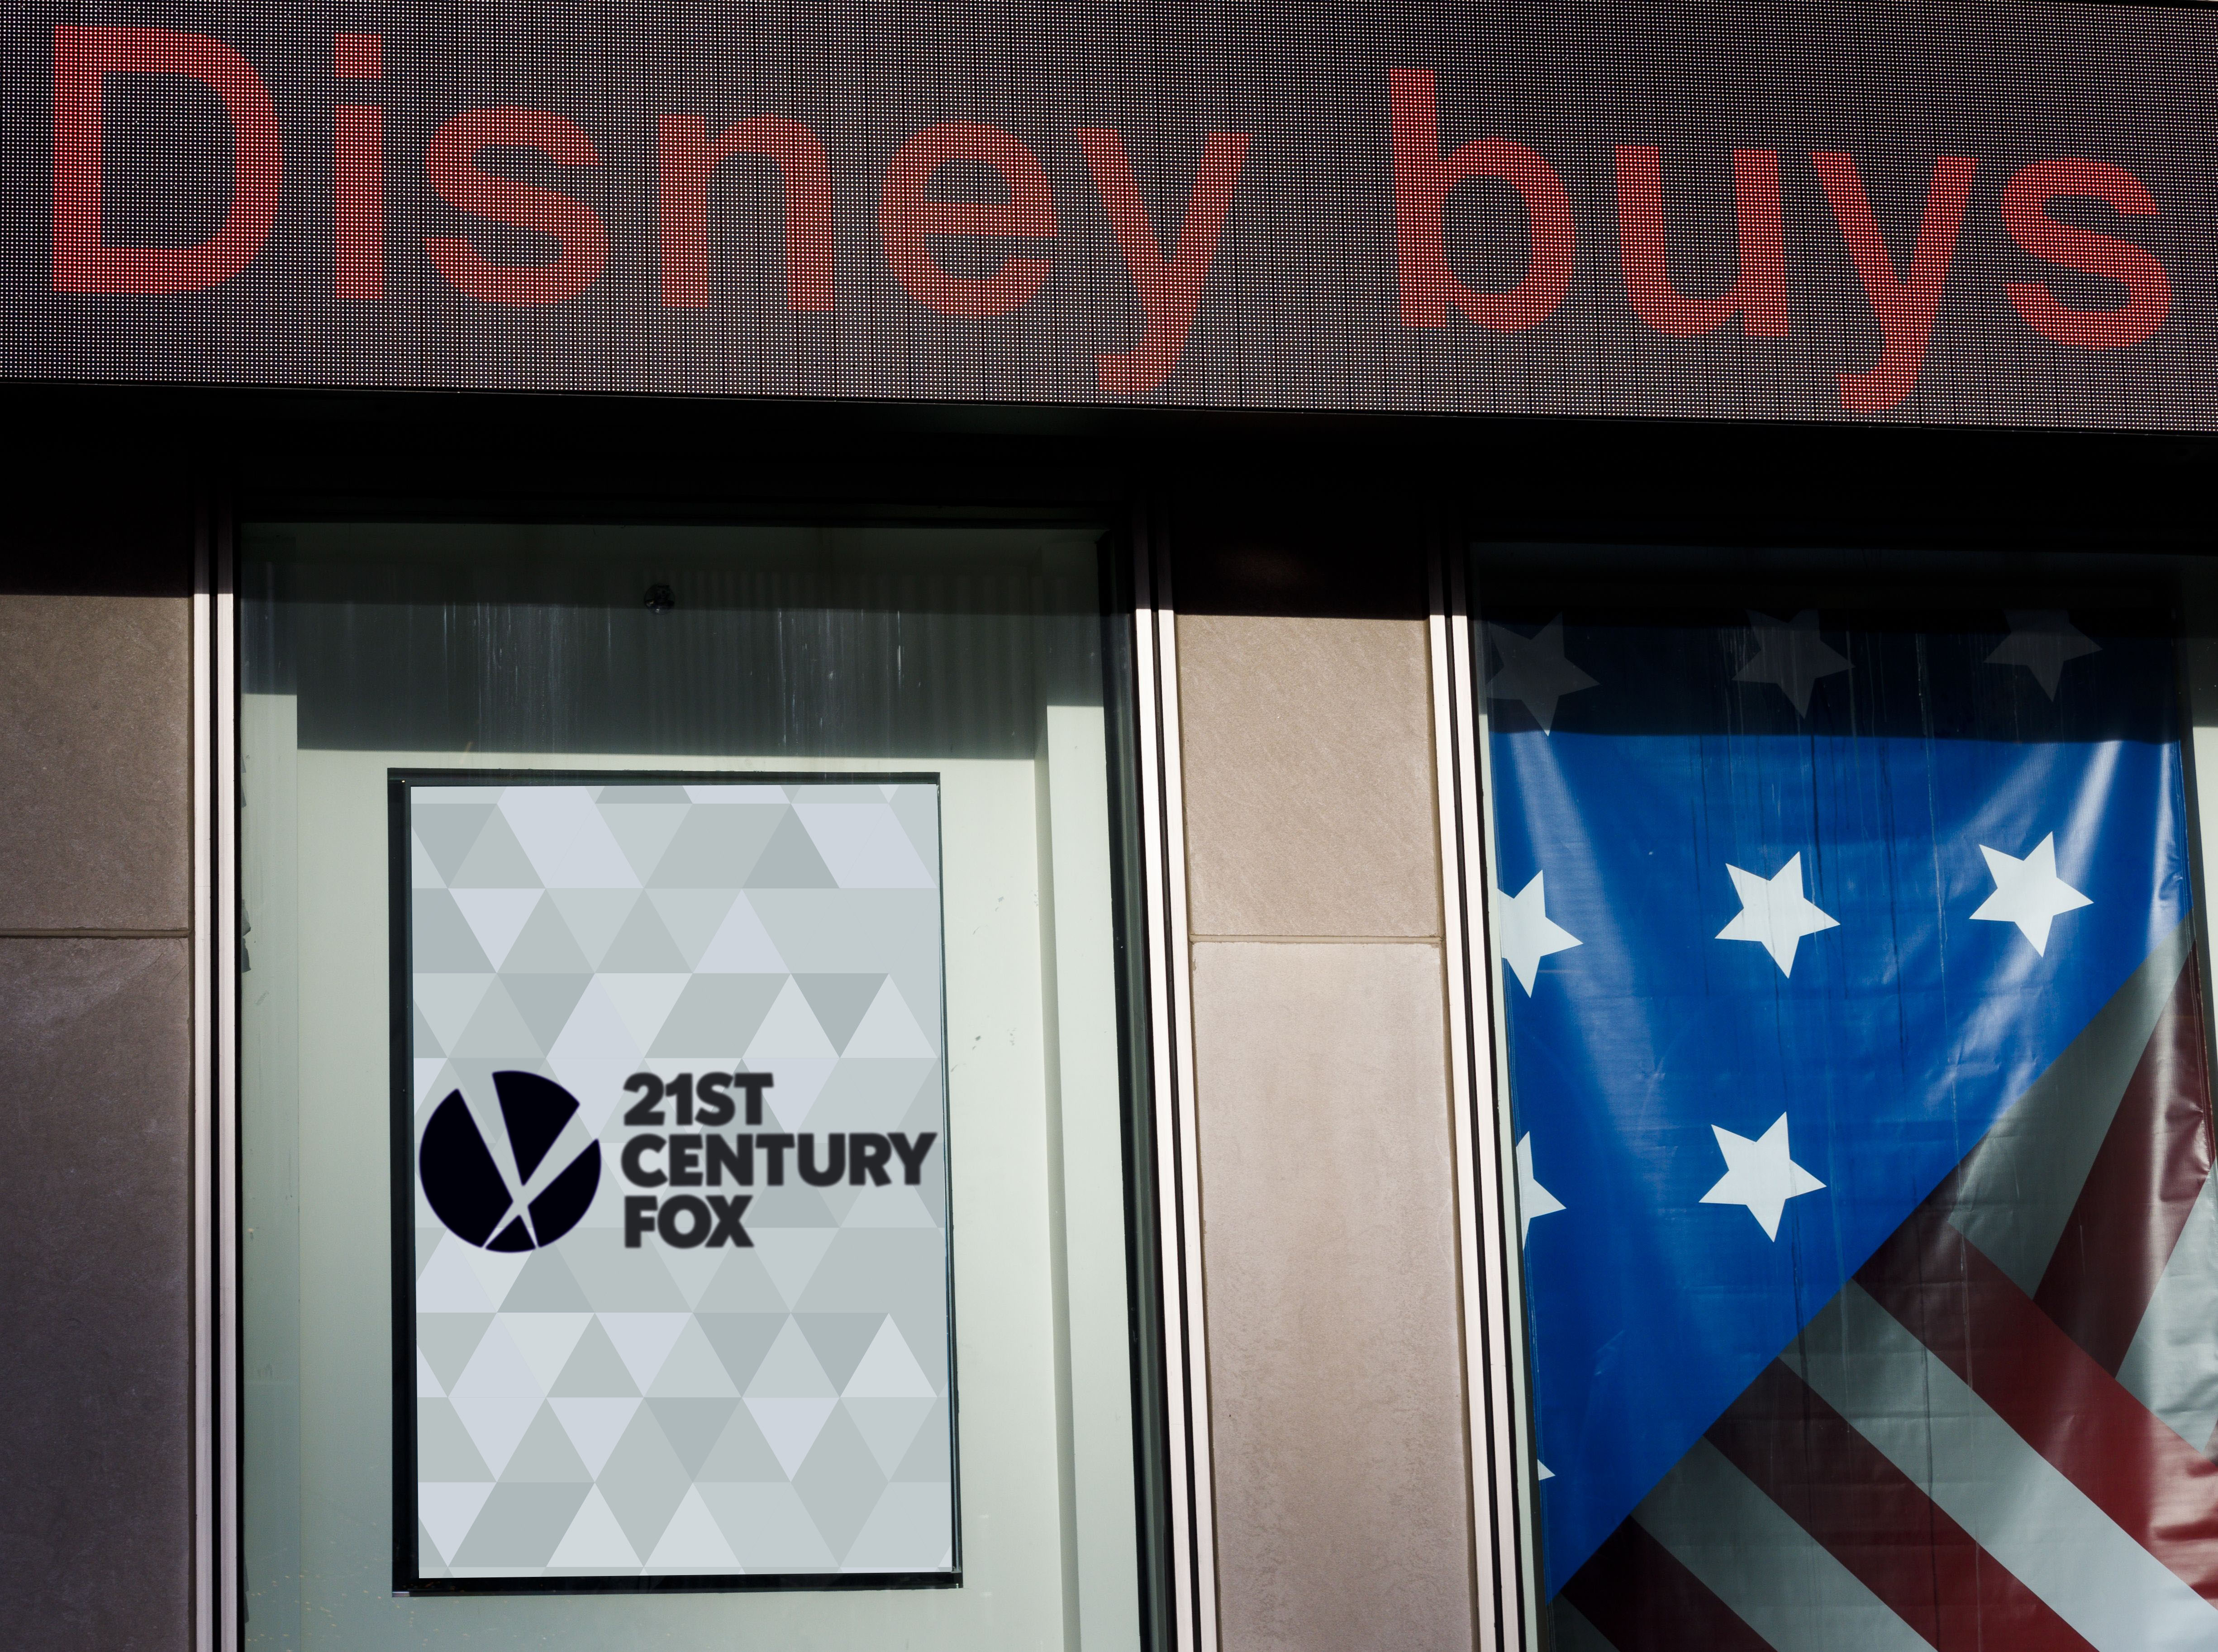 Disney Fox Merger The Ins And Outs Of Hollywood S Mega Deal Deadline